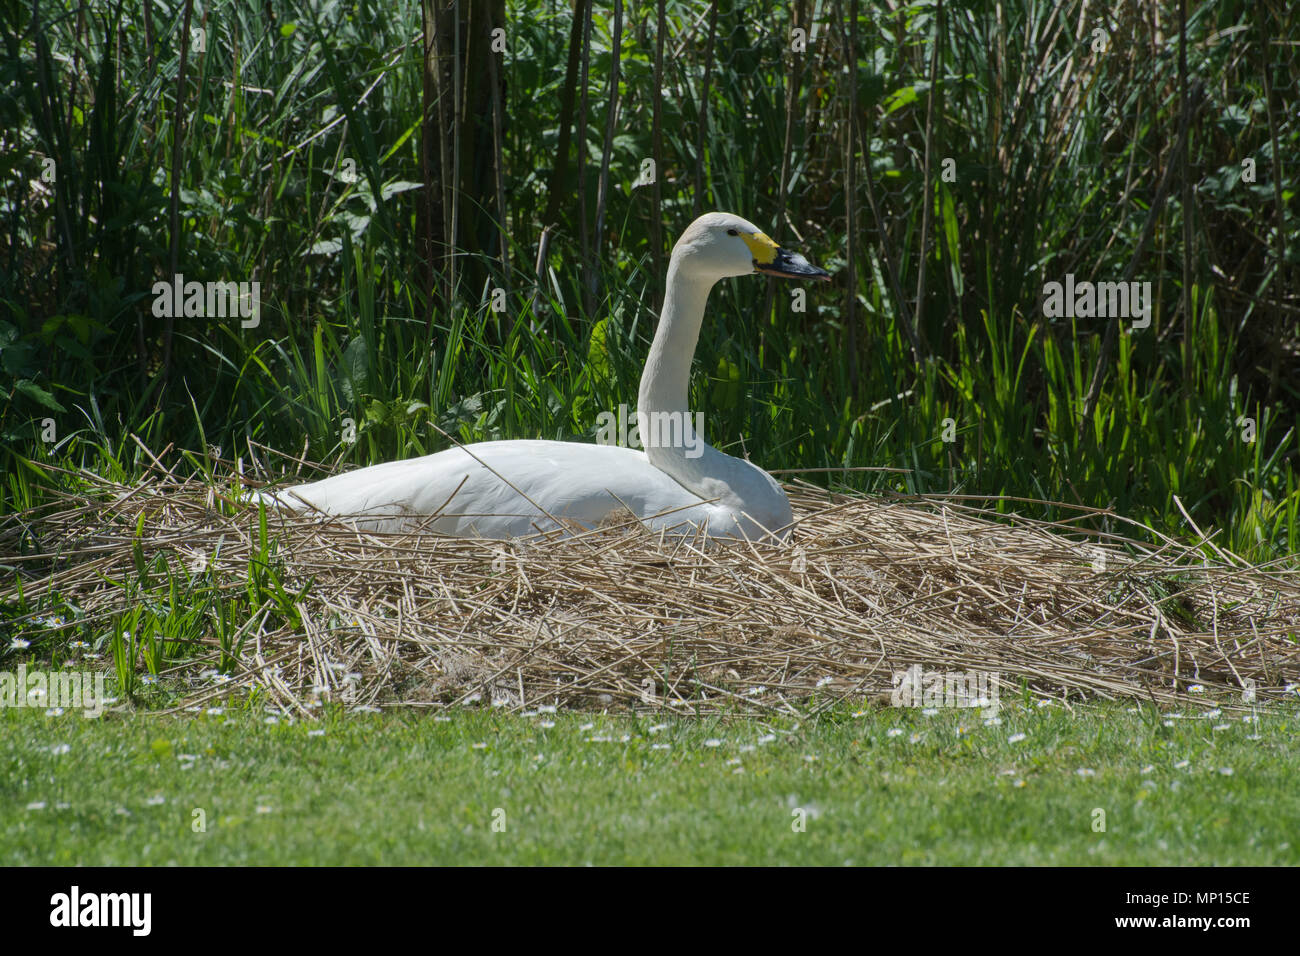 Bewick's swan sitting on her nest at Arundel Wildfowl and Wetlands Trust, West Sussex, UK - Stock Image